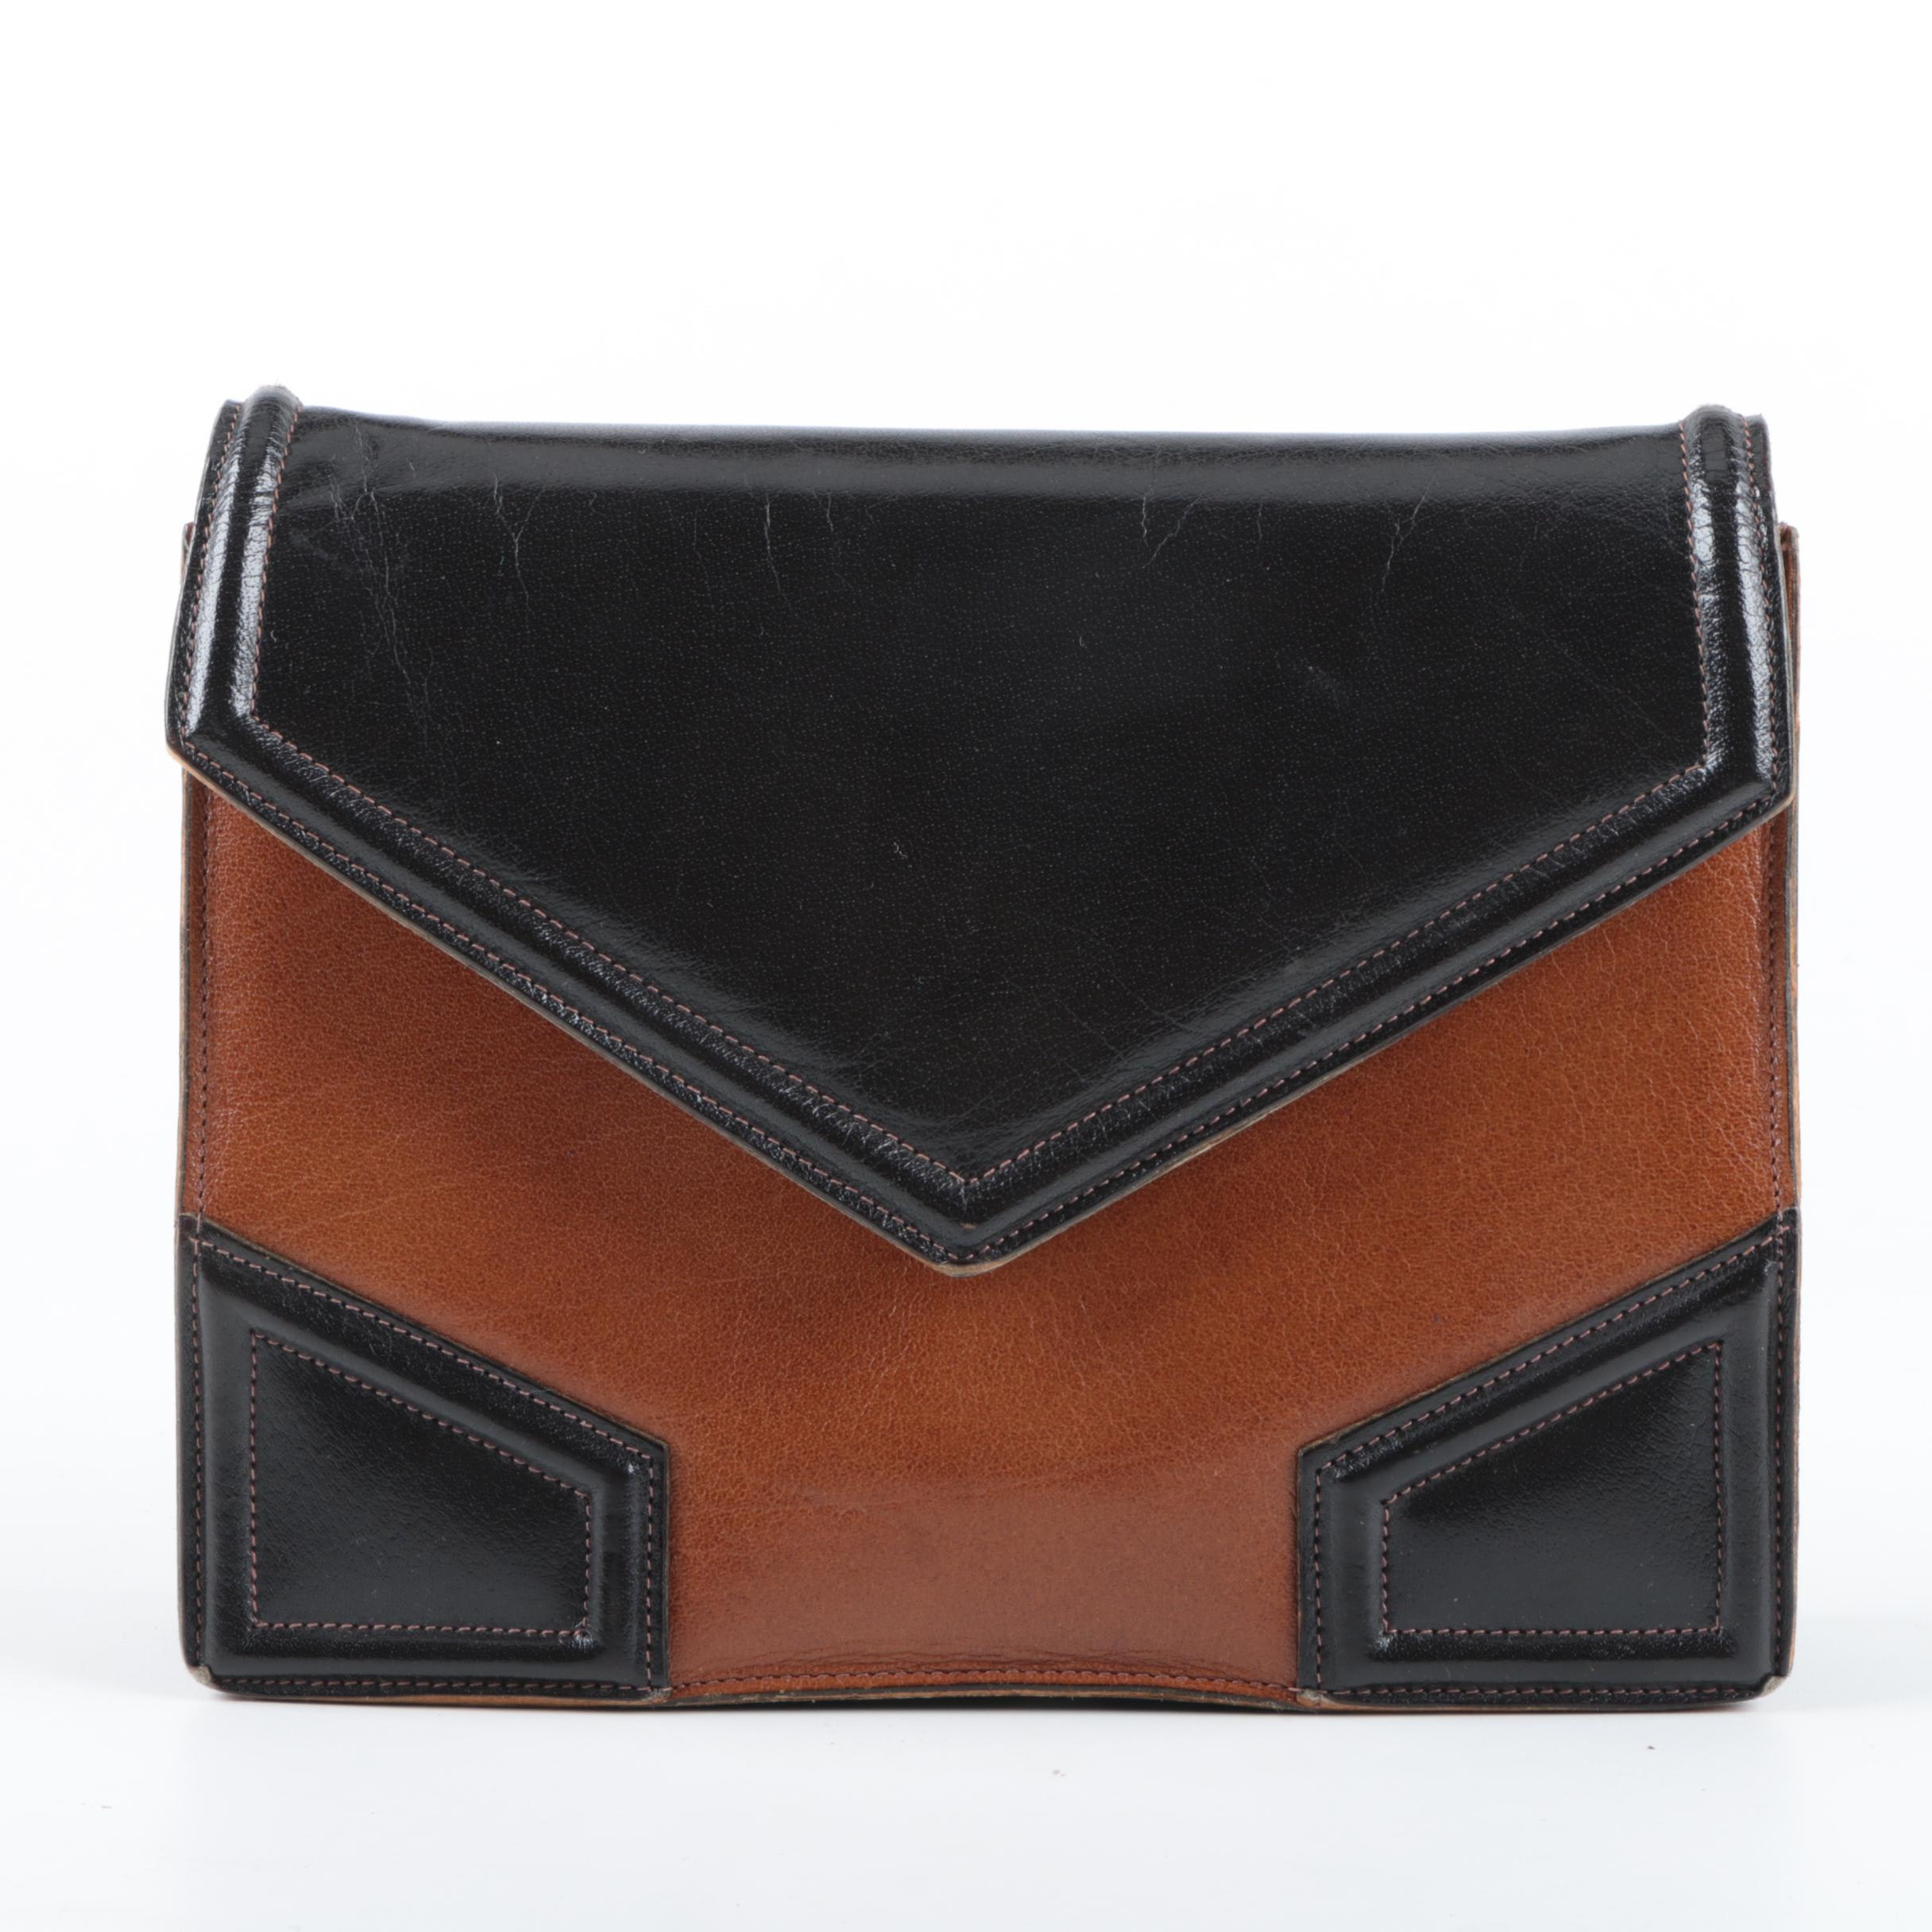 Vintage Yves Saint Laurent Leather Envelope Clutch